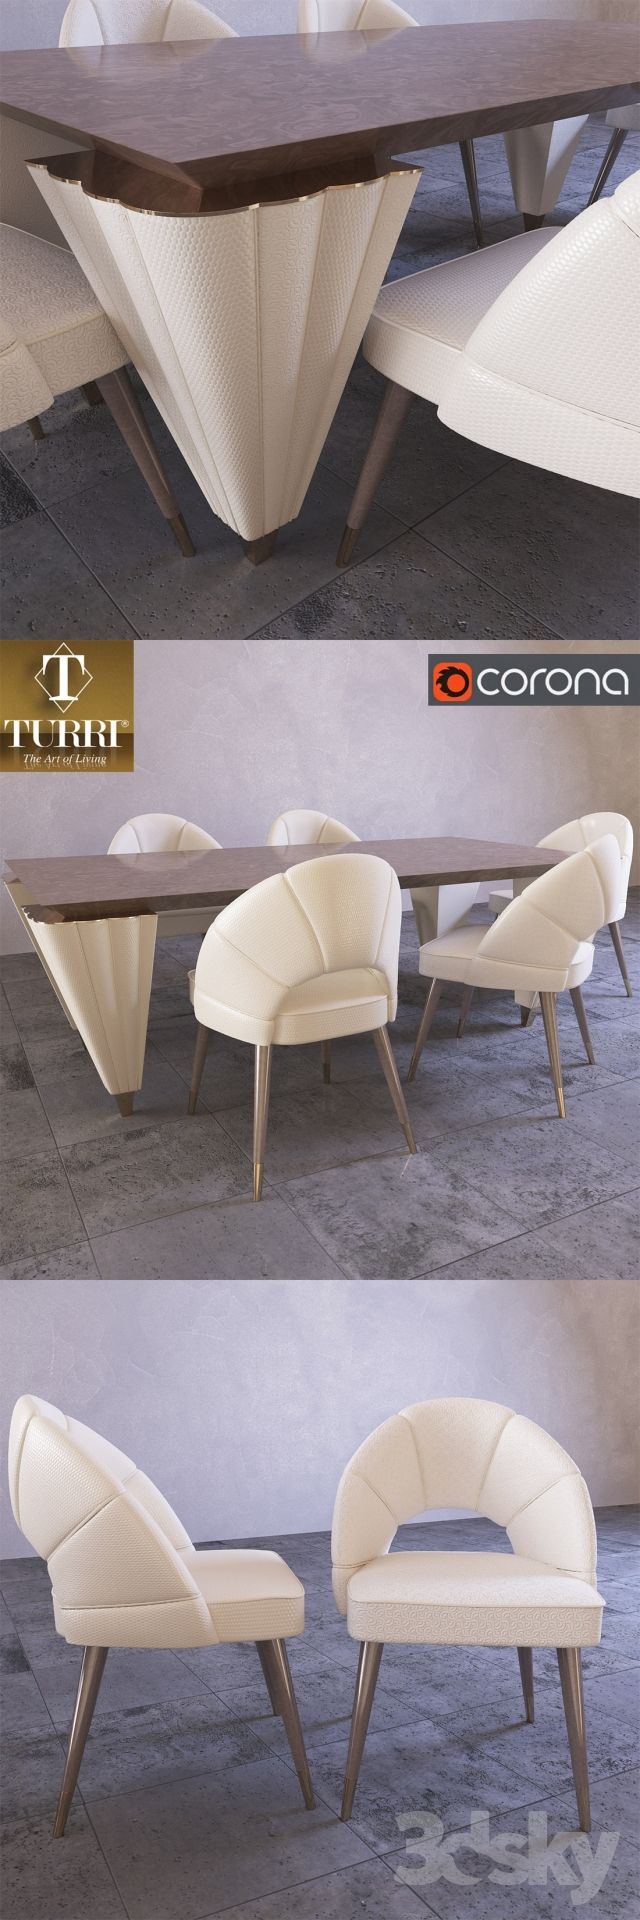 Table And Chairs Turri Orion Dining Table Design Dining Table